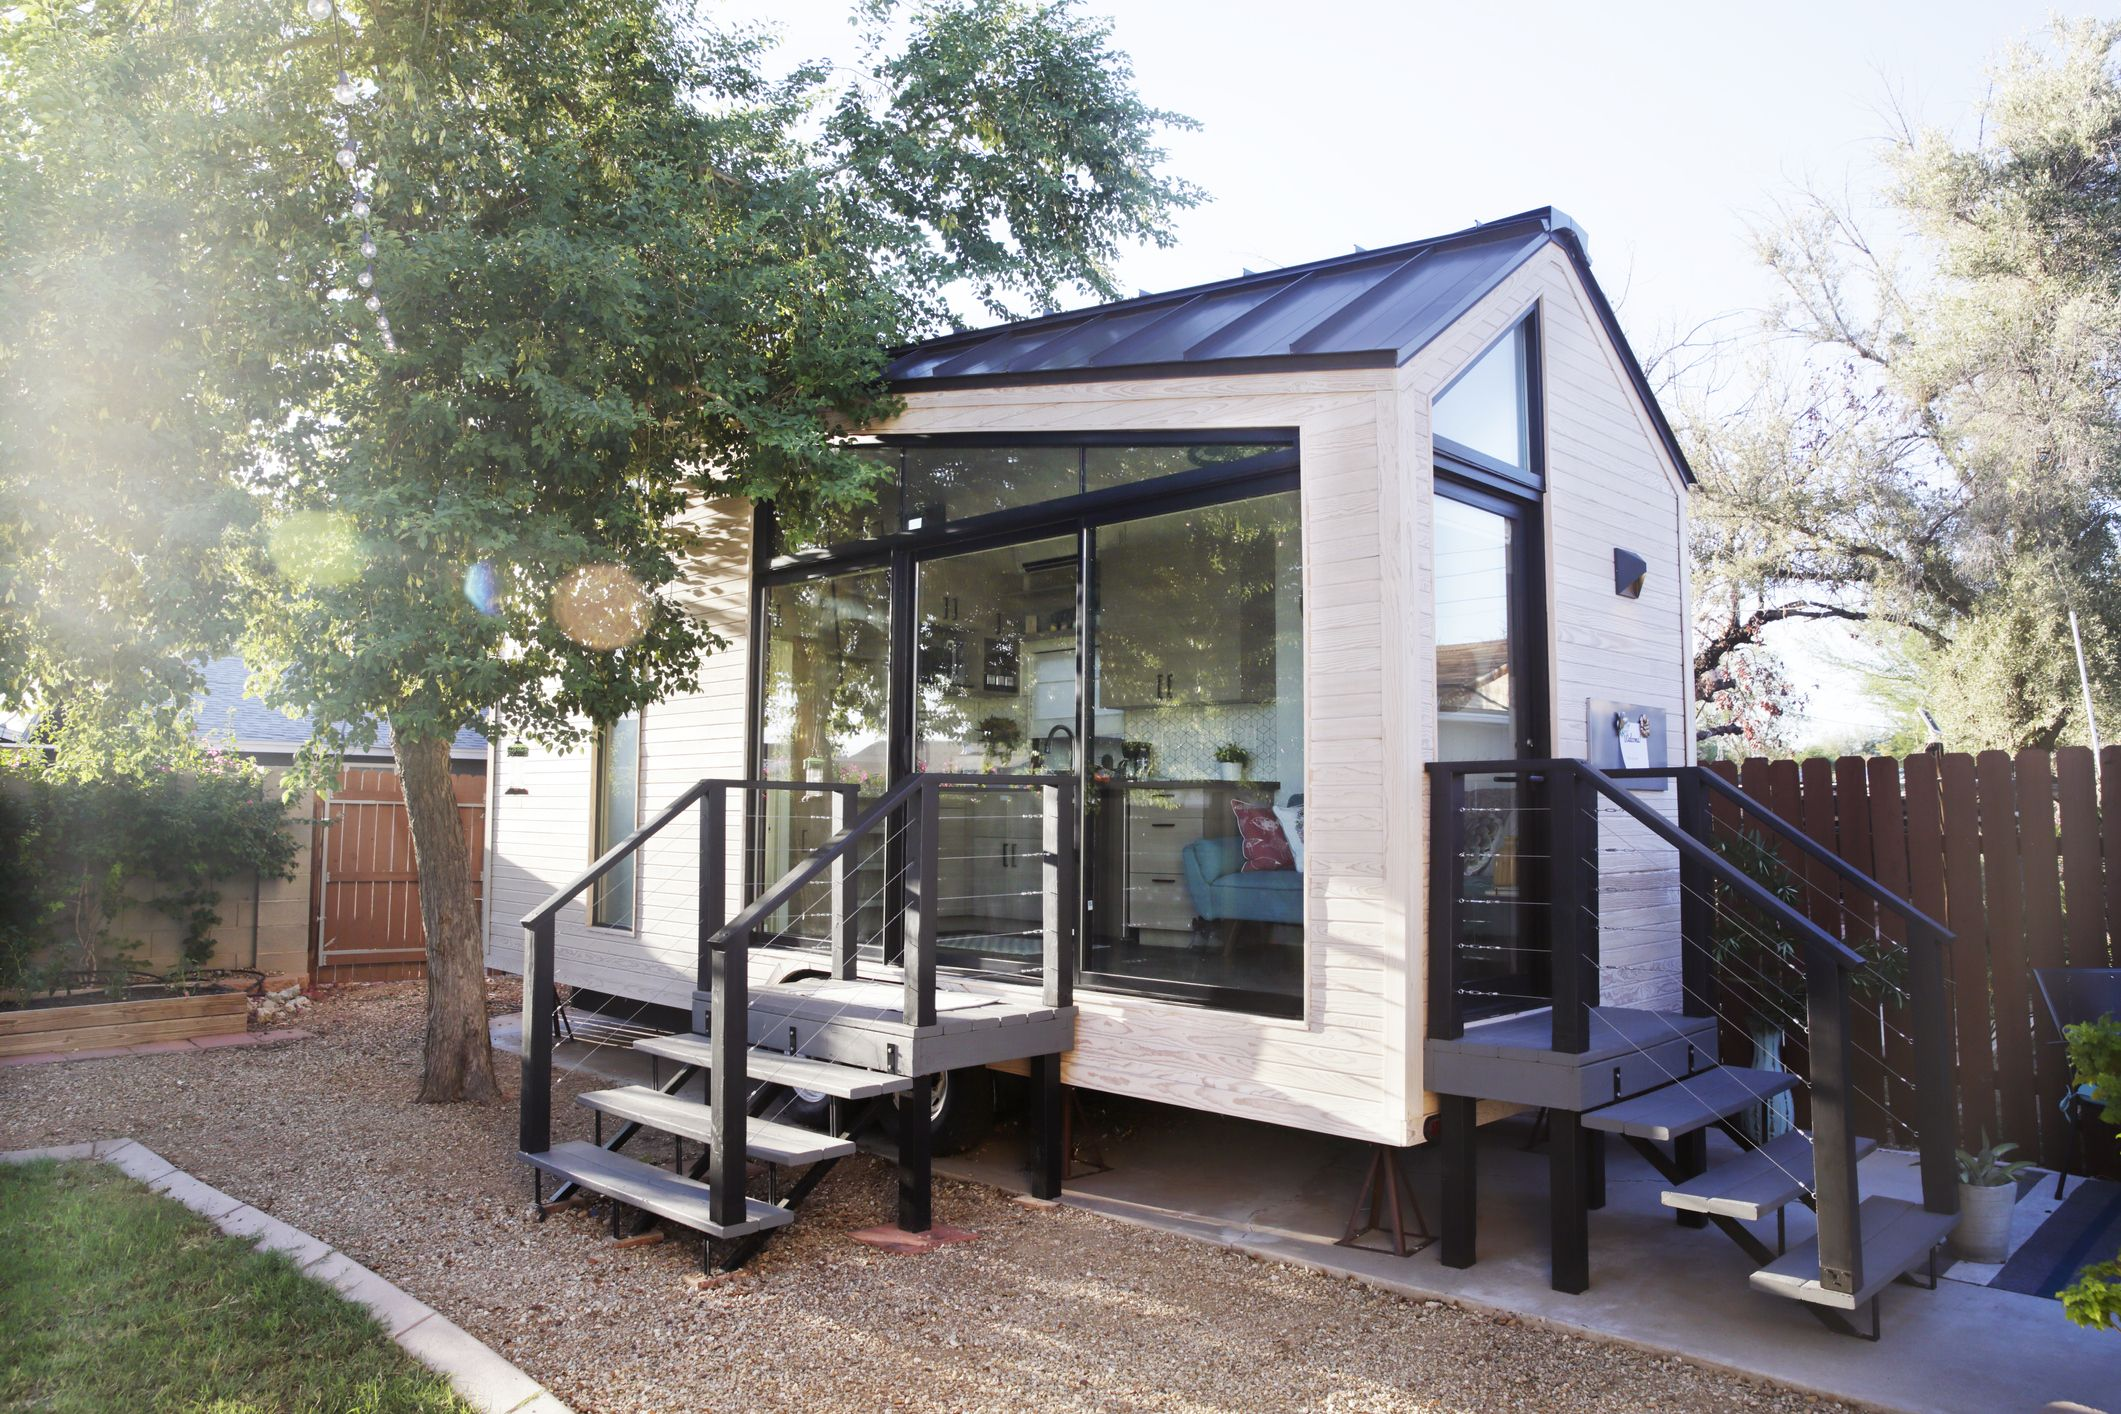 84 best tiny houses 2019 small house pictures plans electrical wiring to garage from house uk also with estate house plans [ 2121 x 1414 Pixel ]